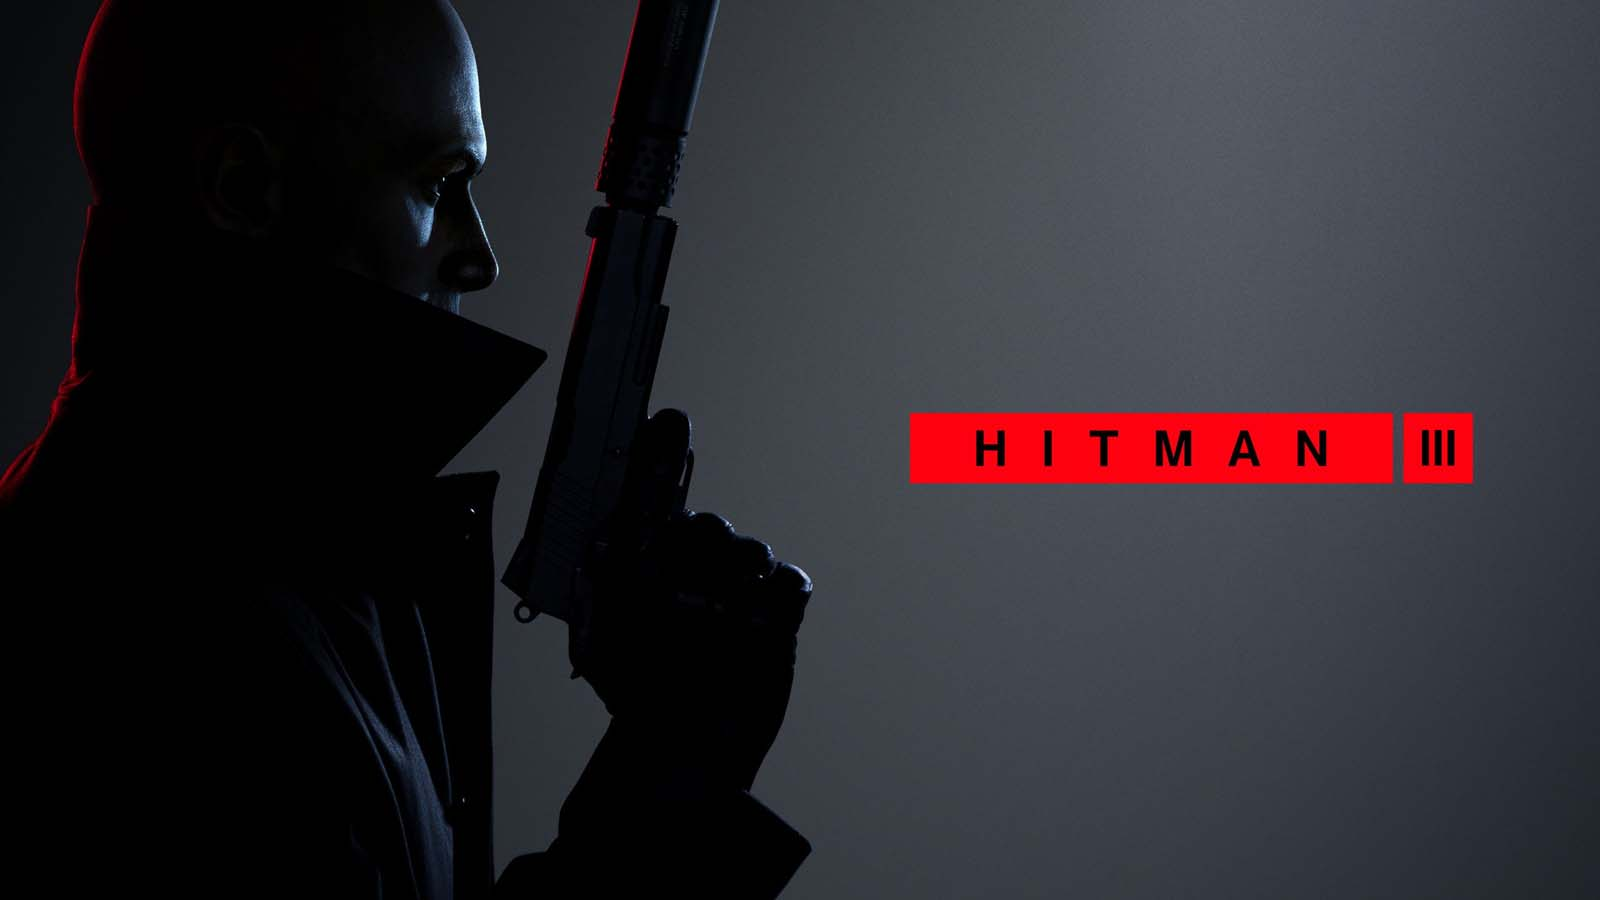 HITMAN 3 to launch for PC exclusively on the Epic Games Store